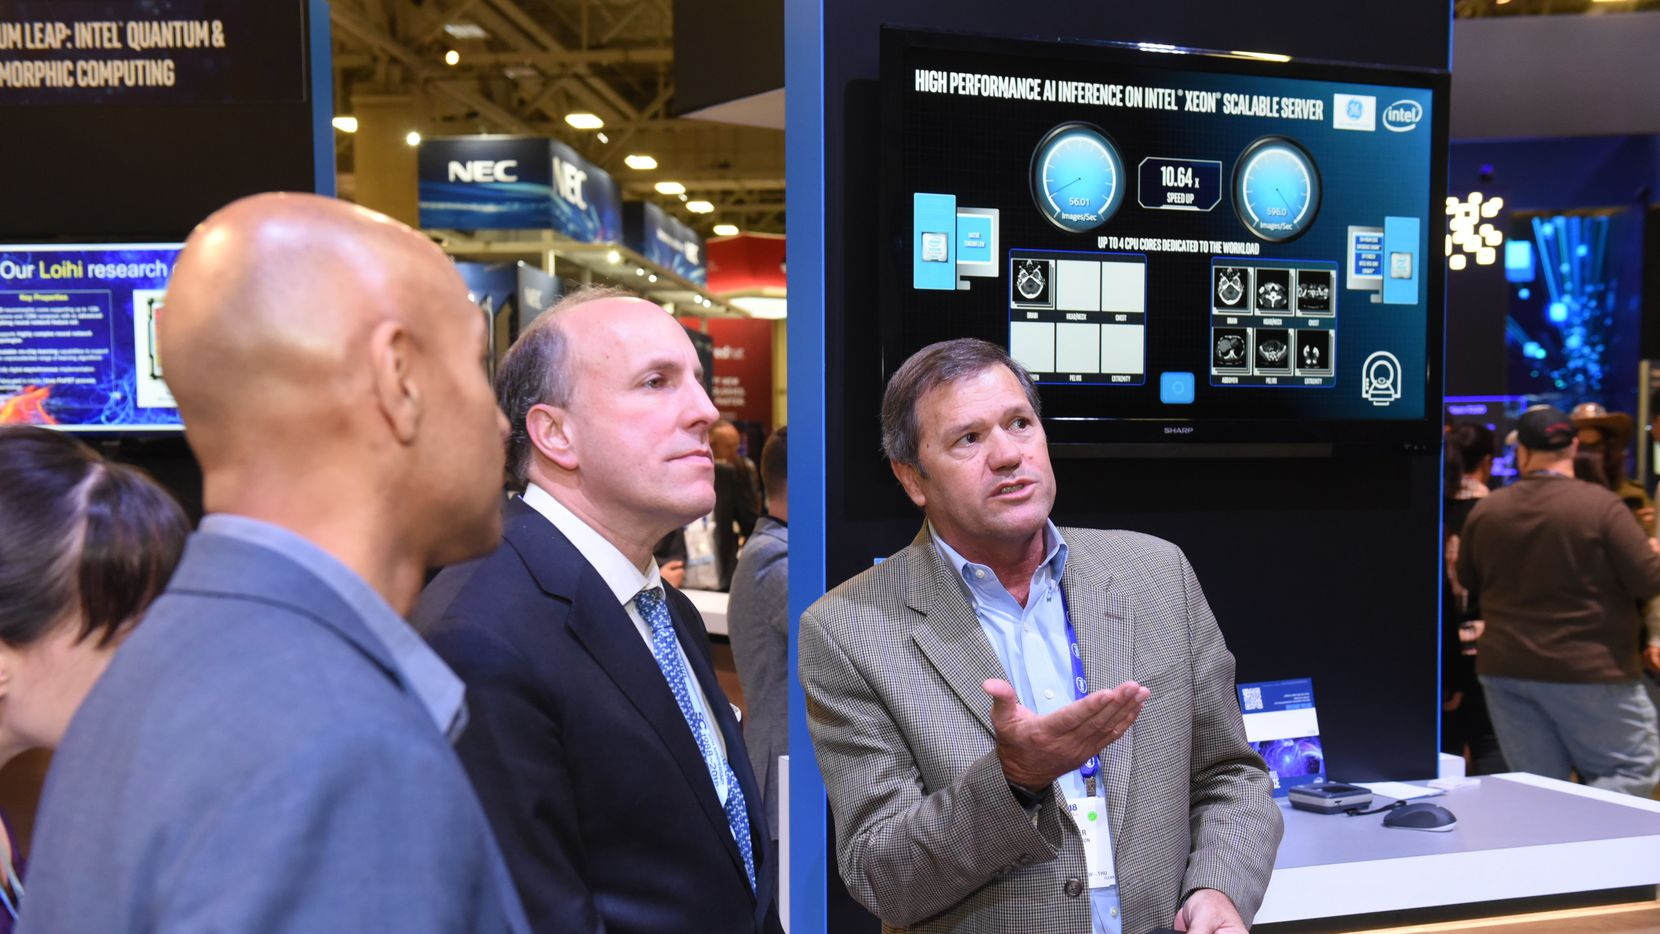 U.S. Department of Energy Undersecretary for Science Paul Dabbar (center) explores the exhibit hall at SC18 at the Kay Bailey Hutchison Convention Center.